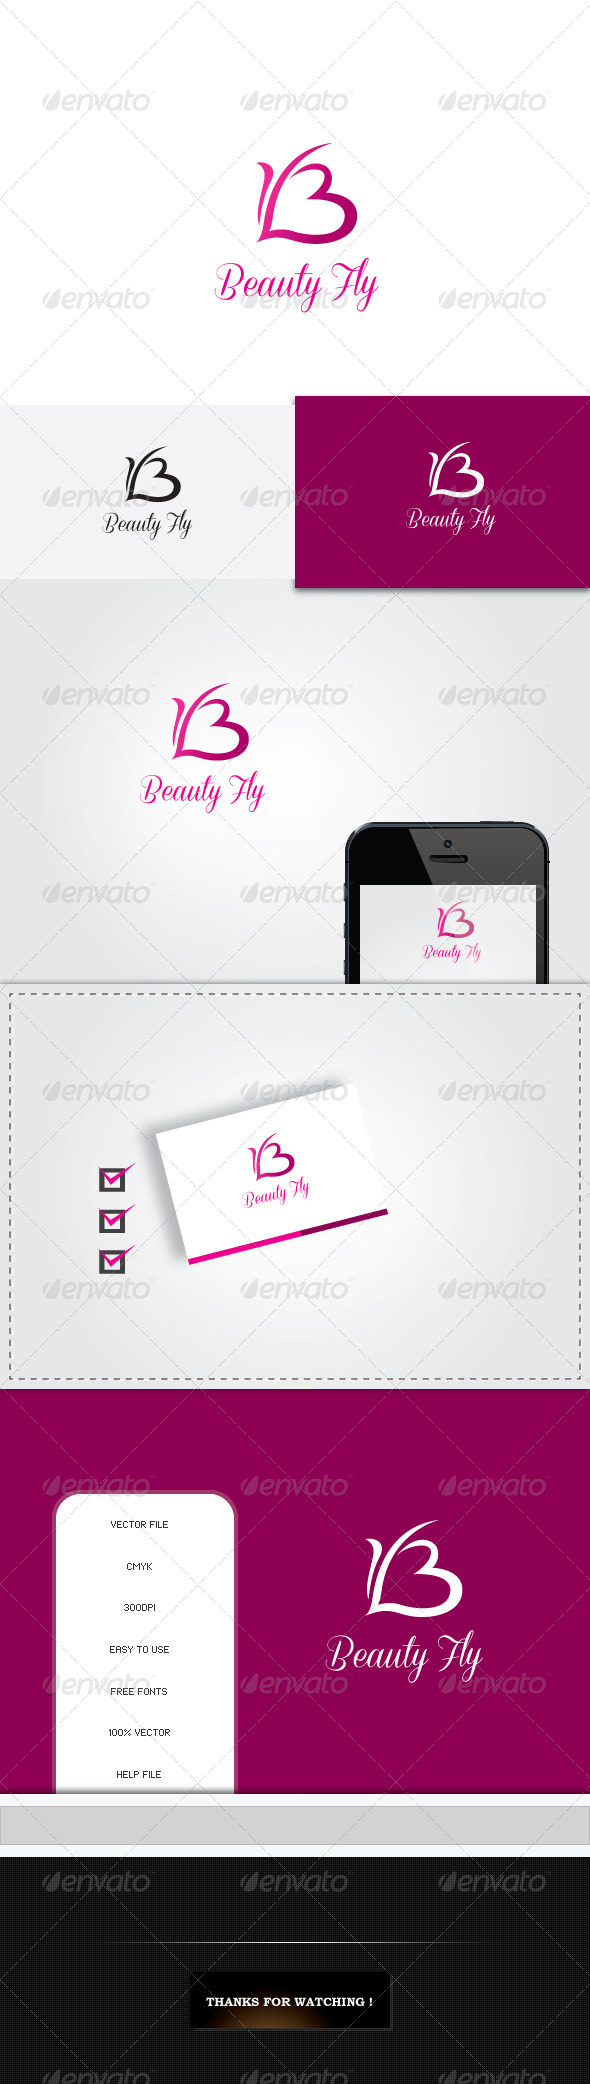 GraphicRiver Beauty Fly Logo 5448145